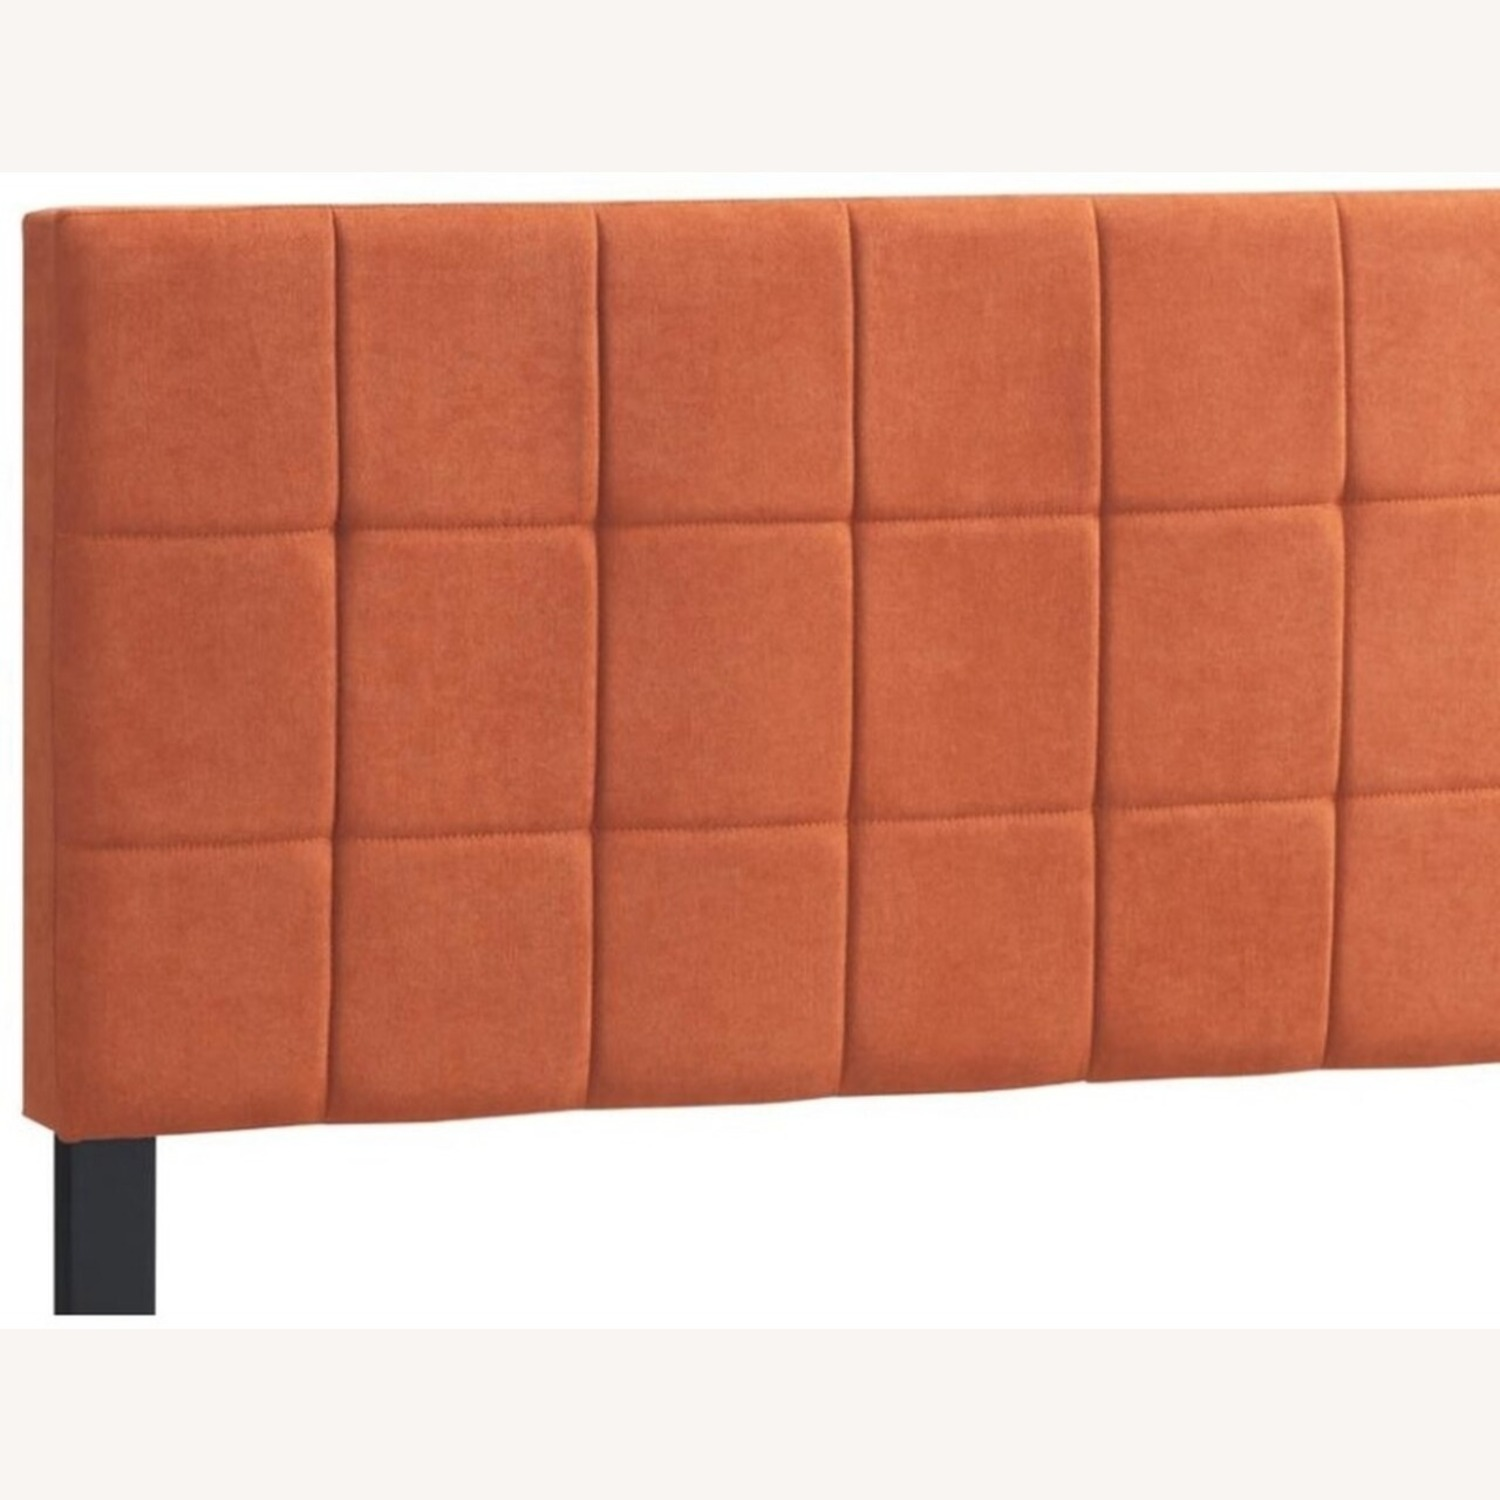 Queen Bed In A Pop Of Color Orange Fabric - image-2